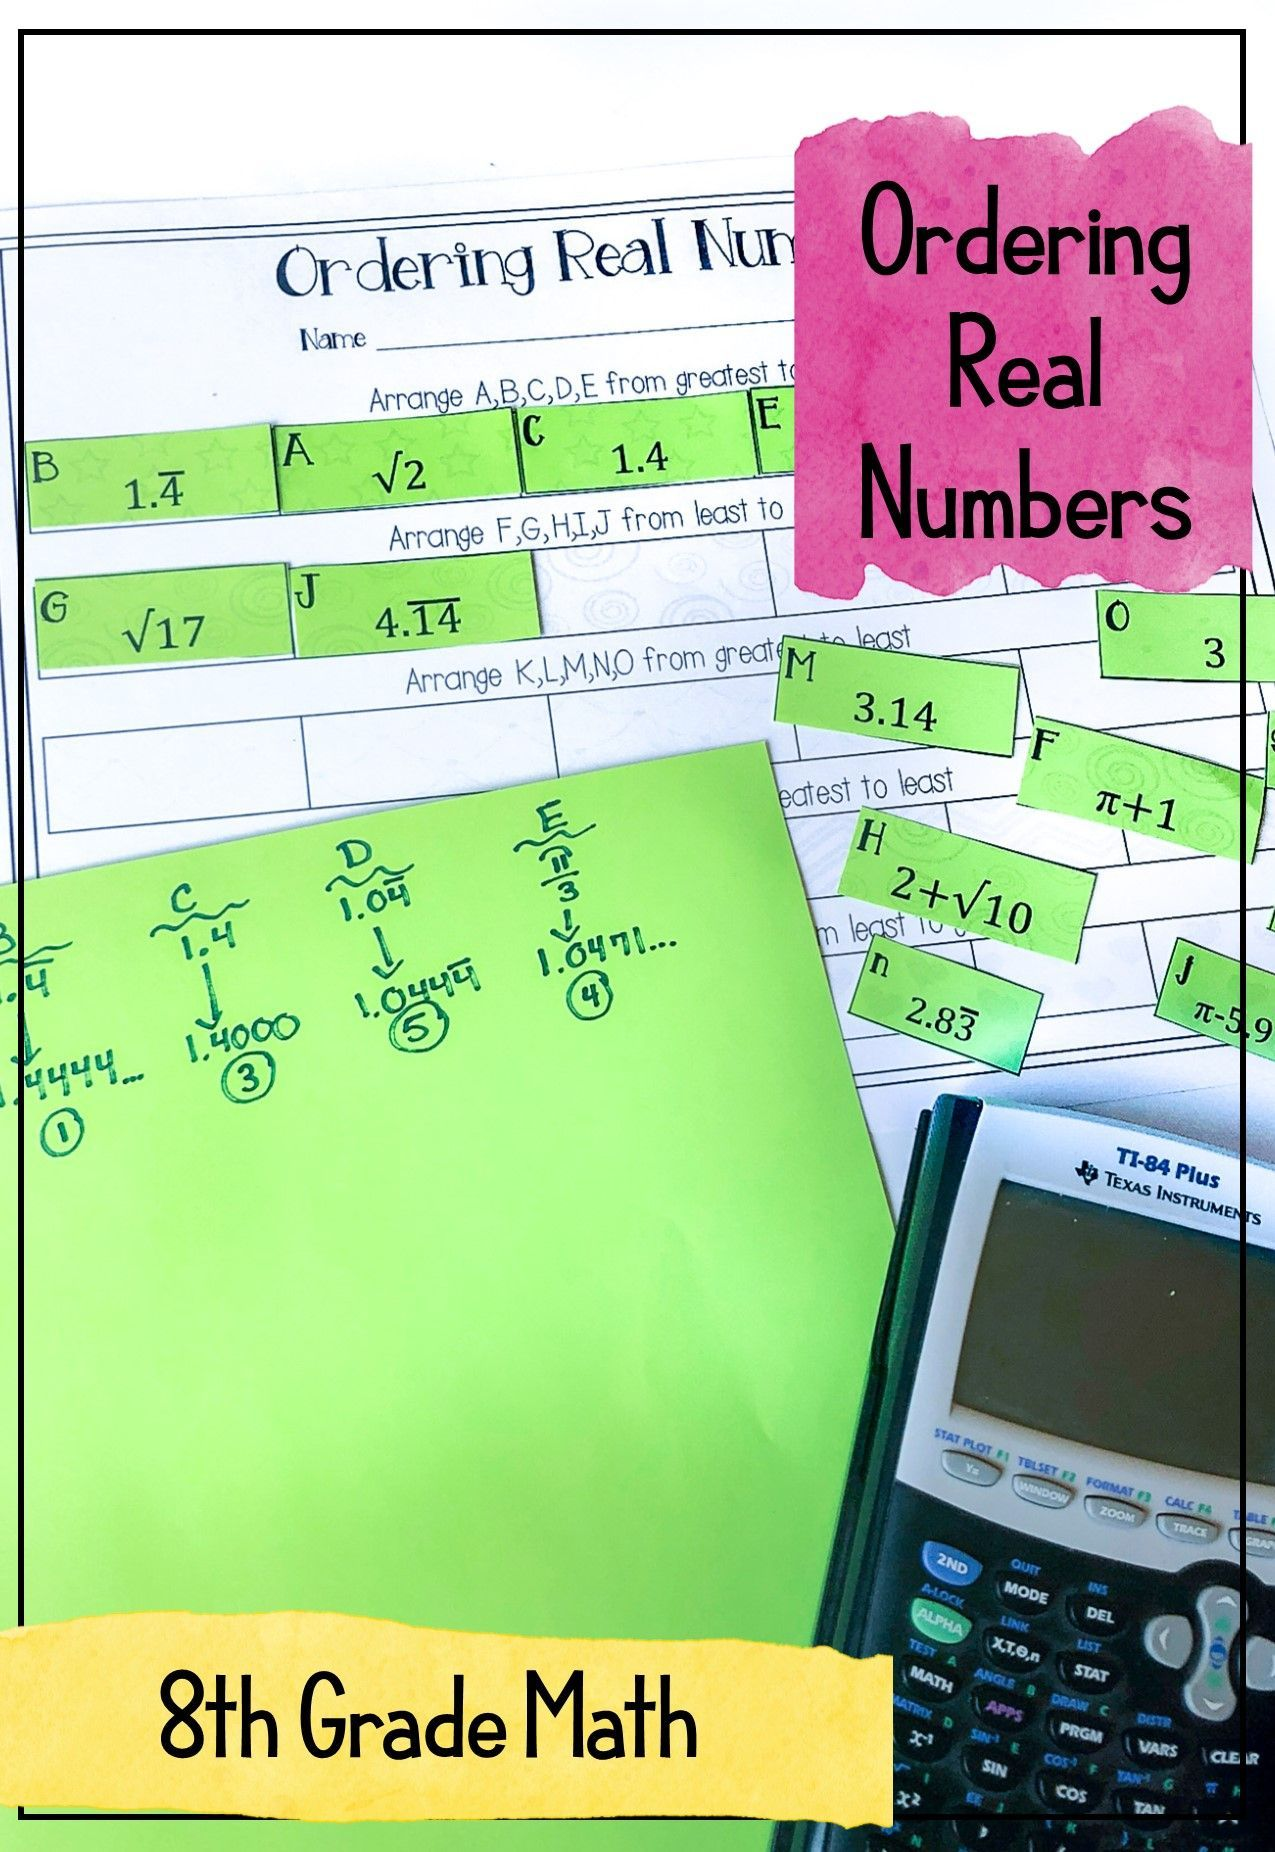 Ordering Real Numbers Activity (Rational and Irrational